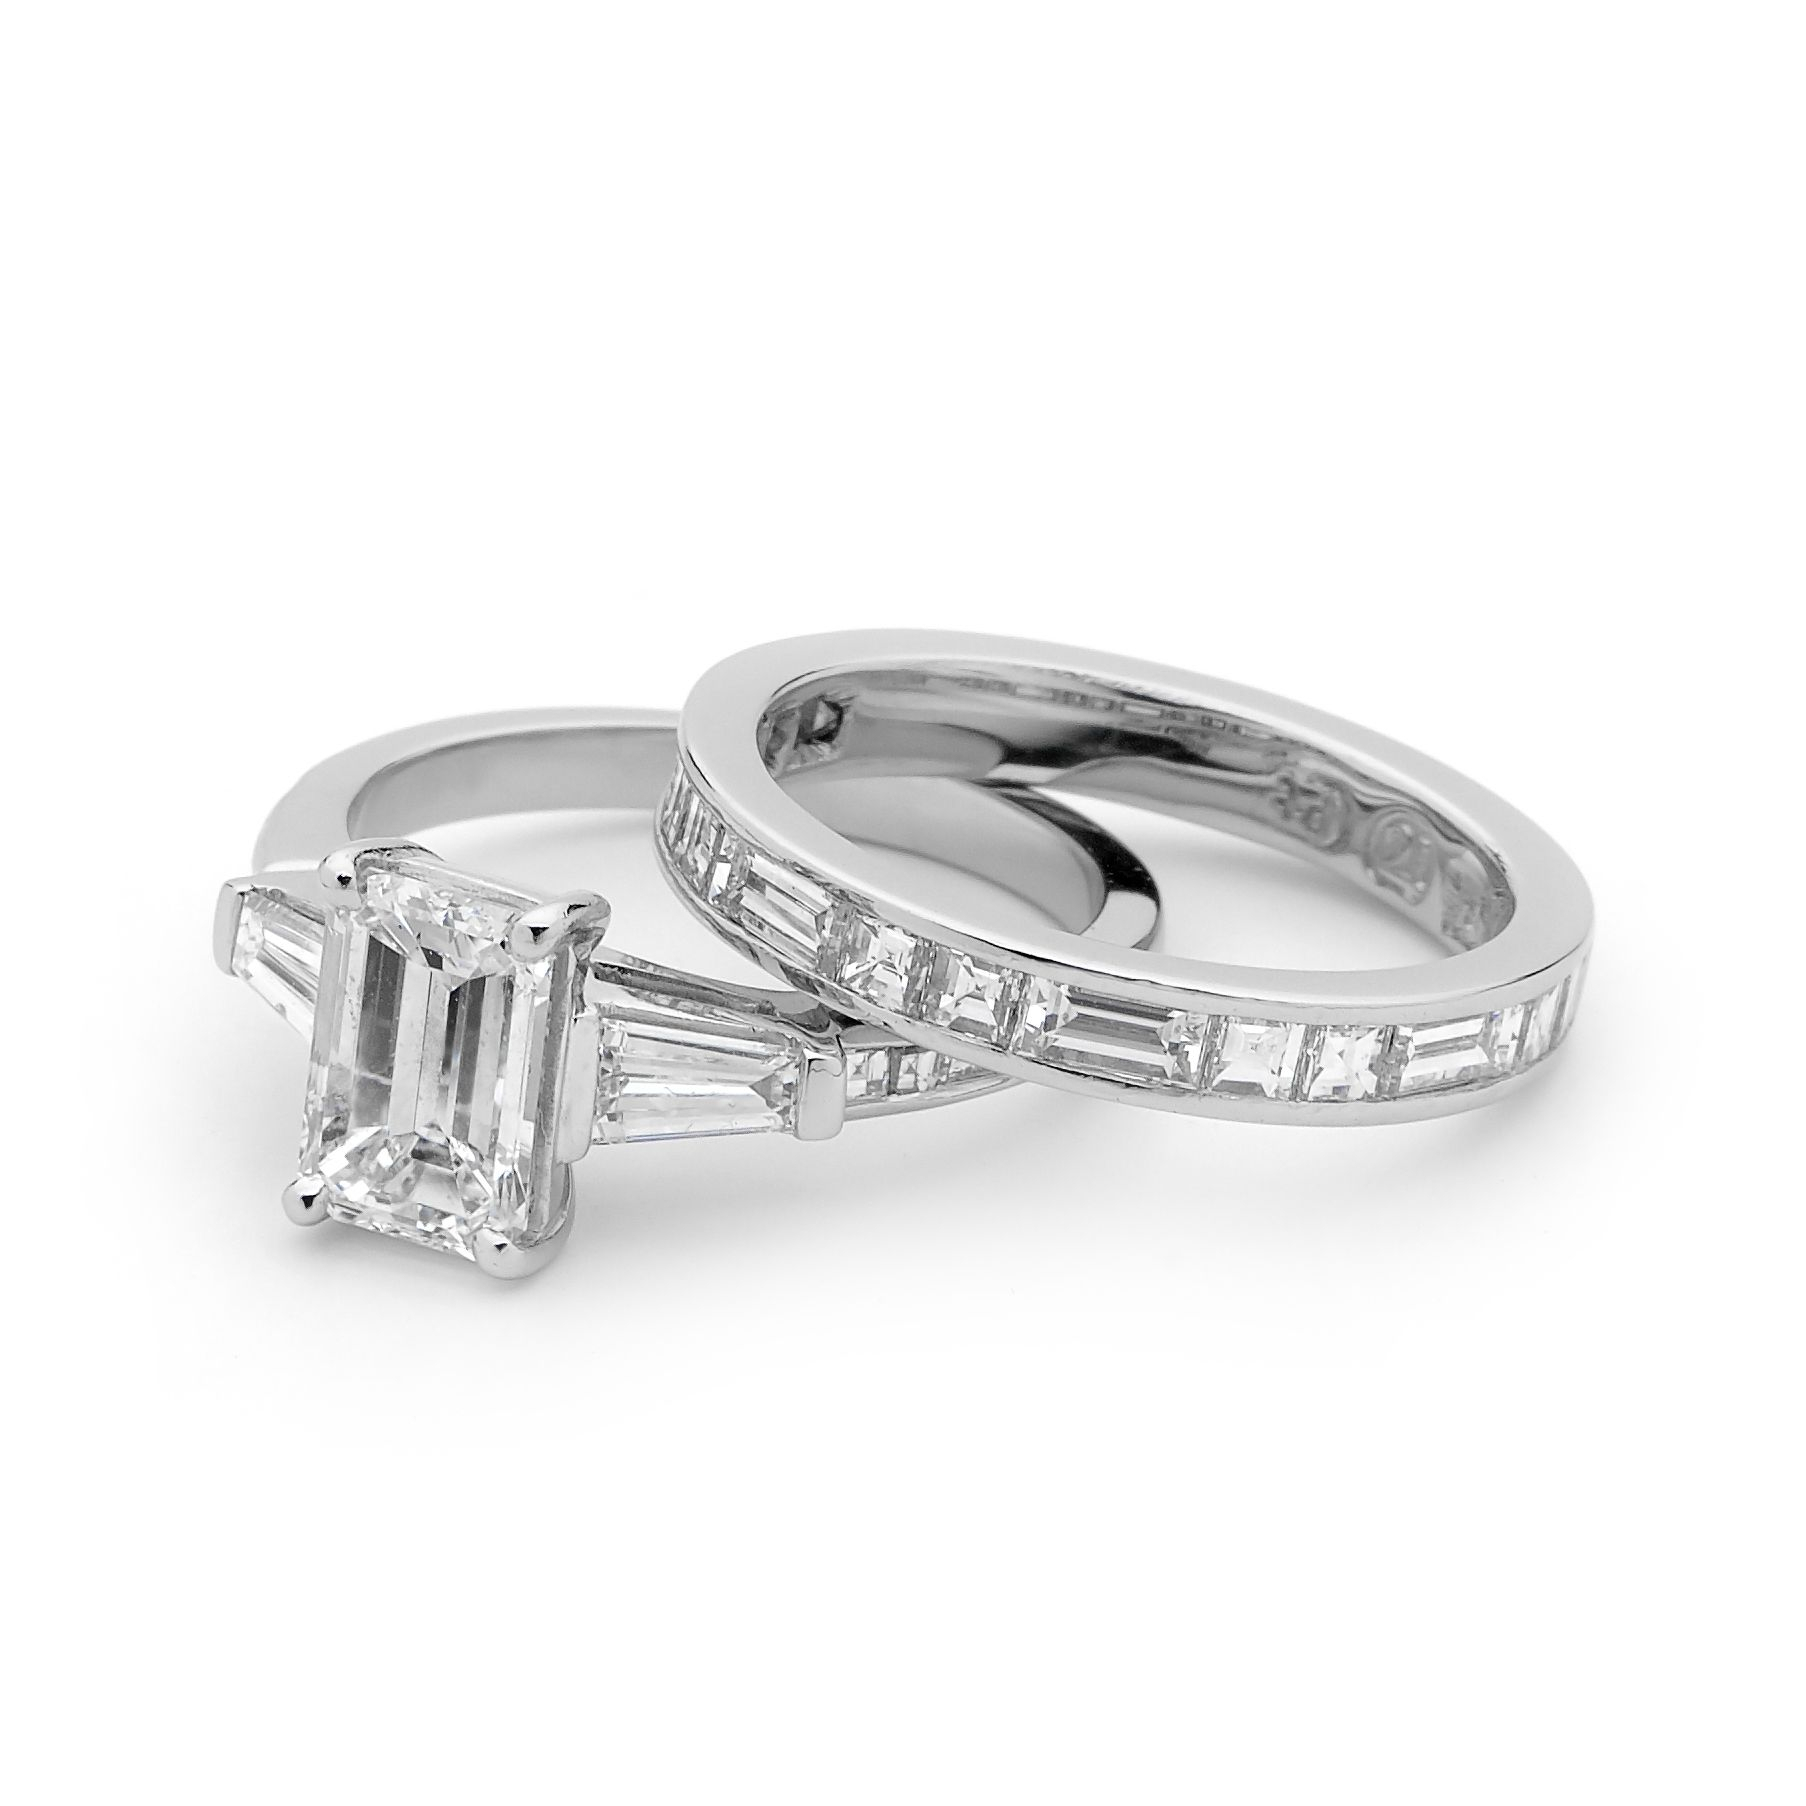 Emerald Cut Diamond Engagement Ring With Wedding Band To With Regard To Latest Bar Set Round Brilliant And Emerald Cut Diamond Wedding Bands (View 13 of 25)